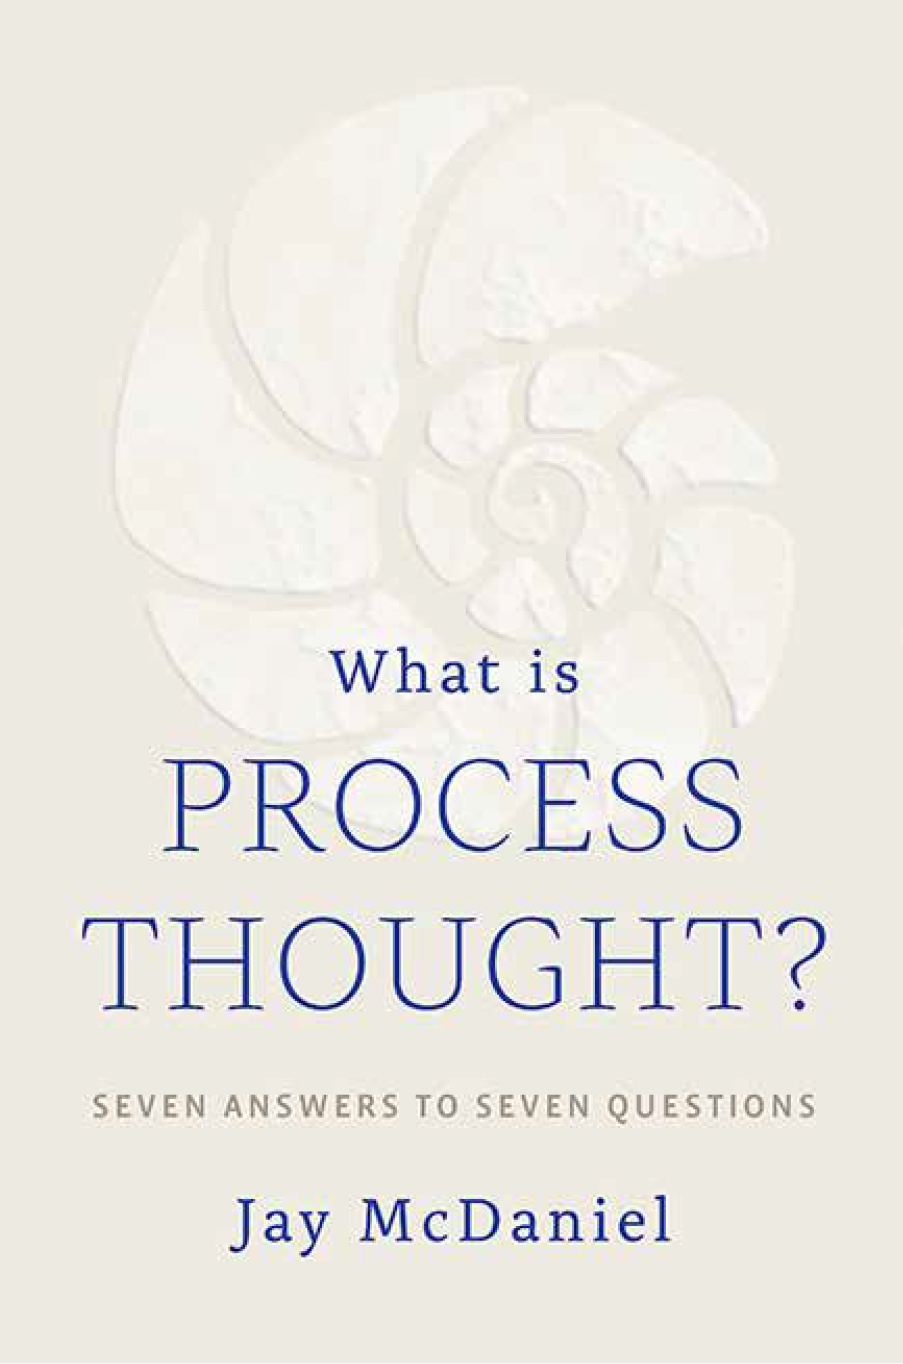 Book_Cover-What_is_Process_Thought-McDaniel